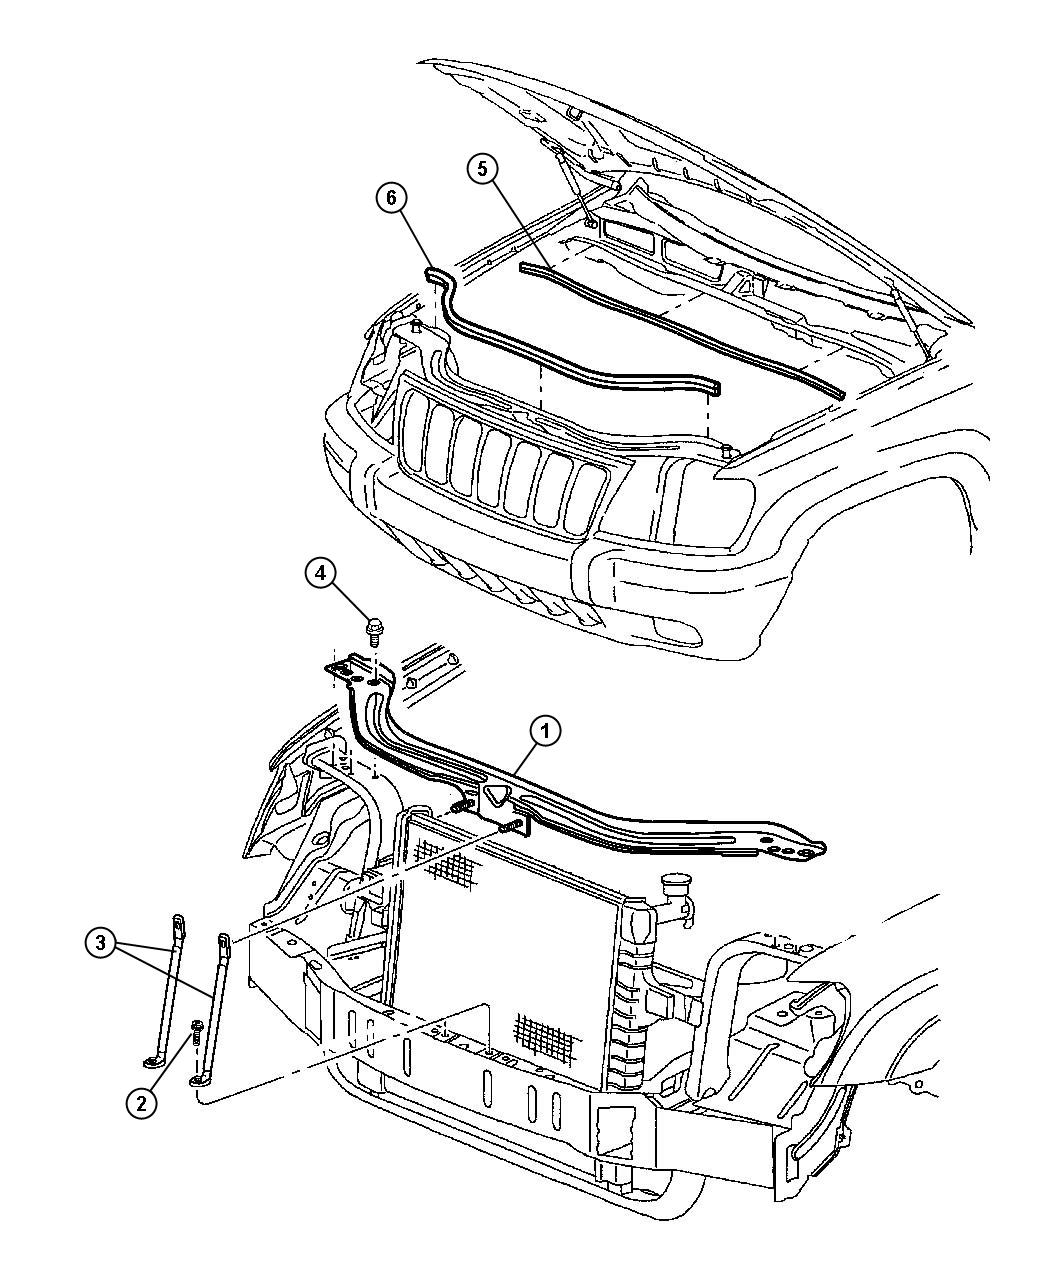 2002 jeep grand cherokee parts diagram  jeep  auto wiring